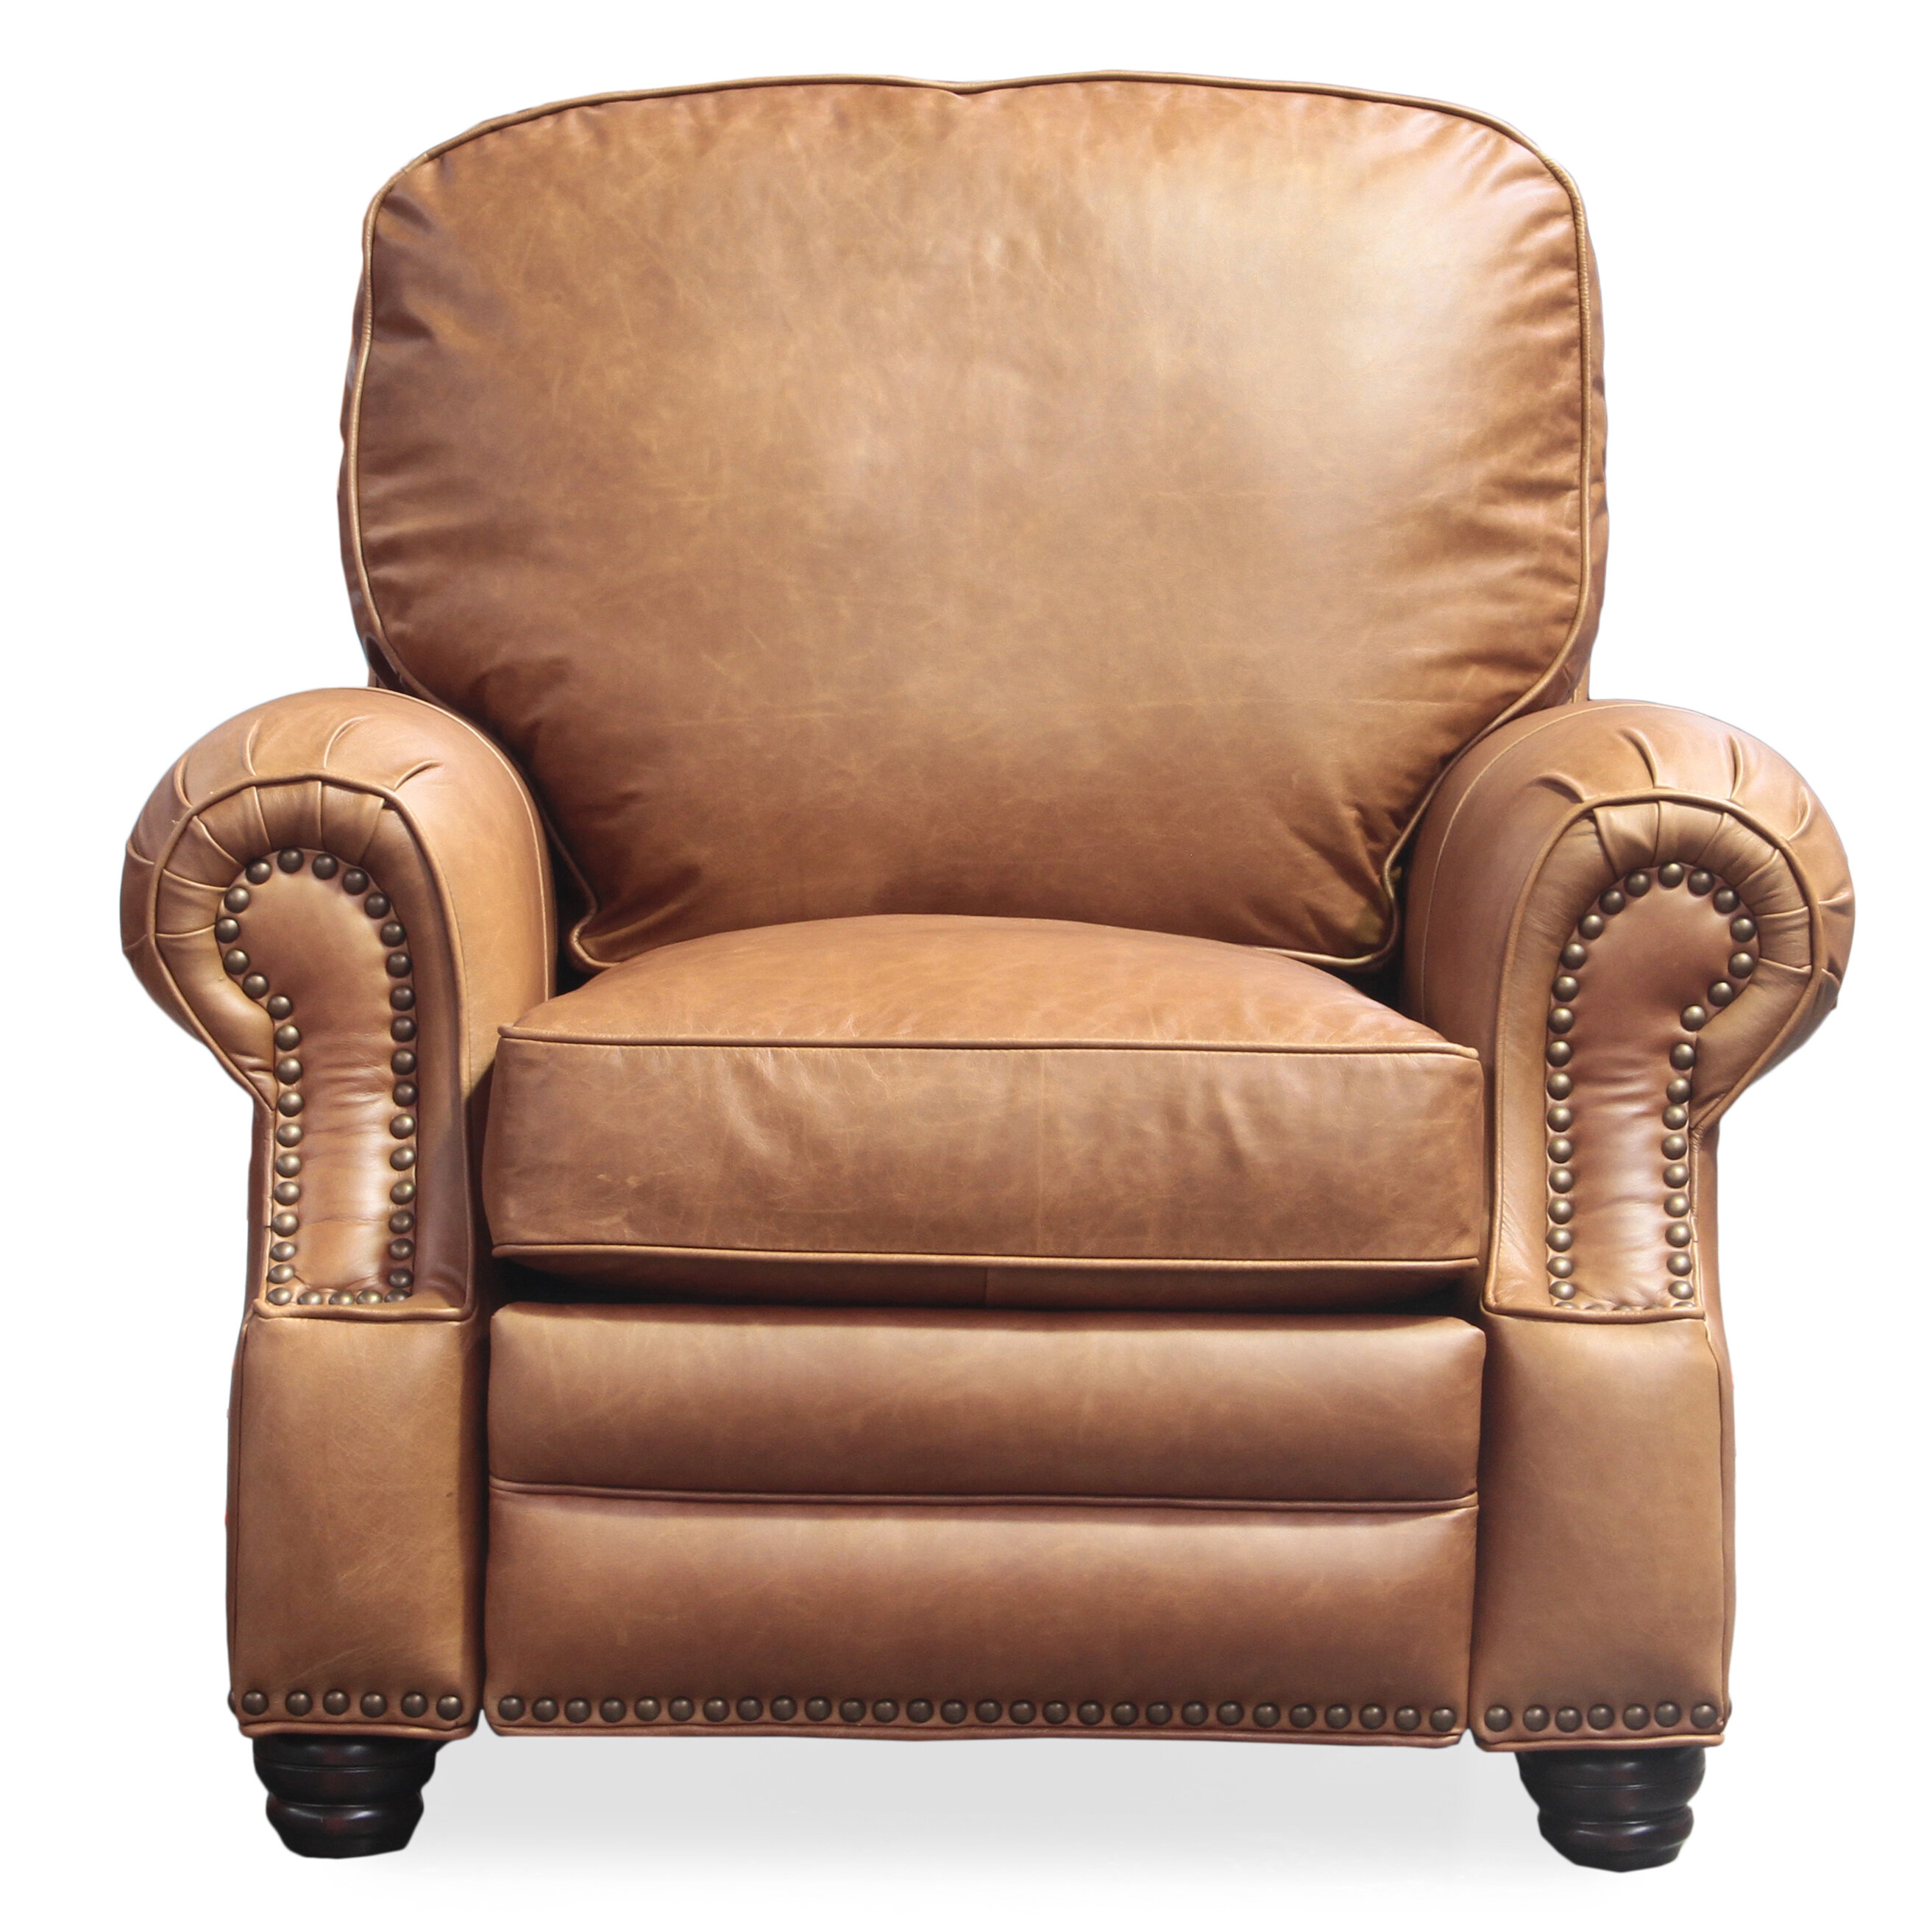 texas recliner color li by simon furniture leather brown power hut